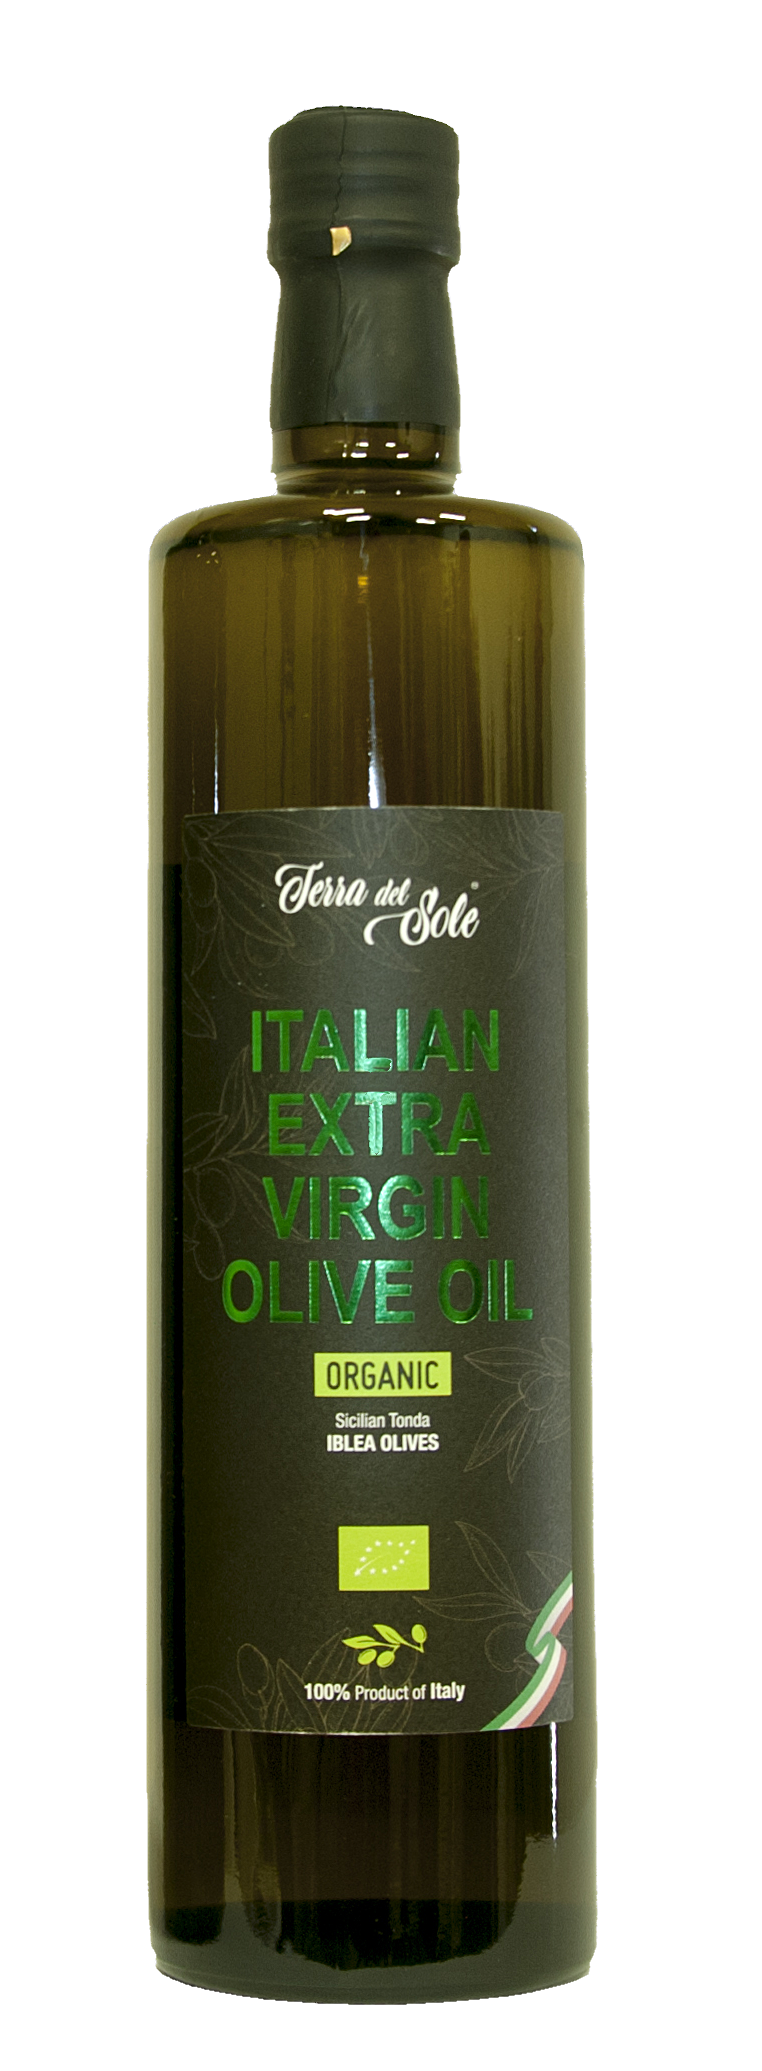 Oil: Extra Virgin Olive Oil ORGANIC - Terra del Sole - 750 ml ( 25.36 fl oz) Imported from Italy